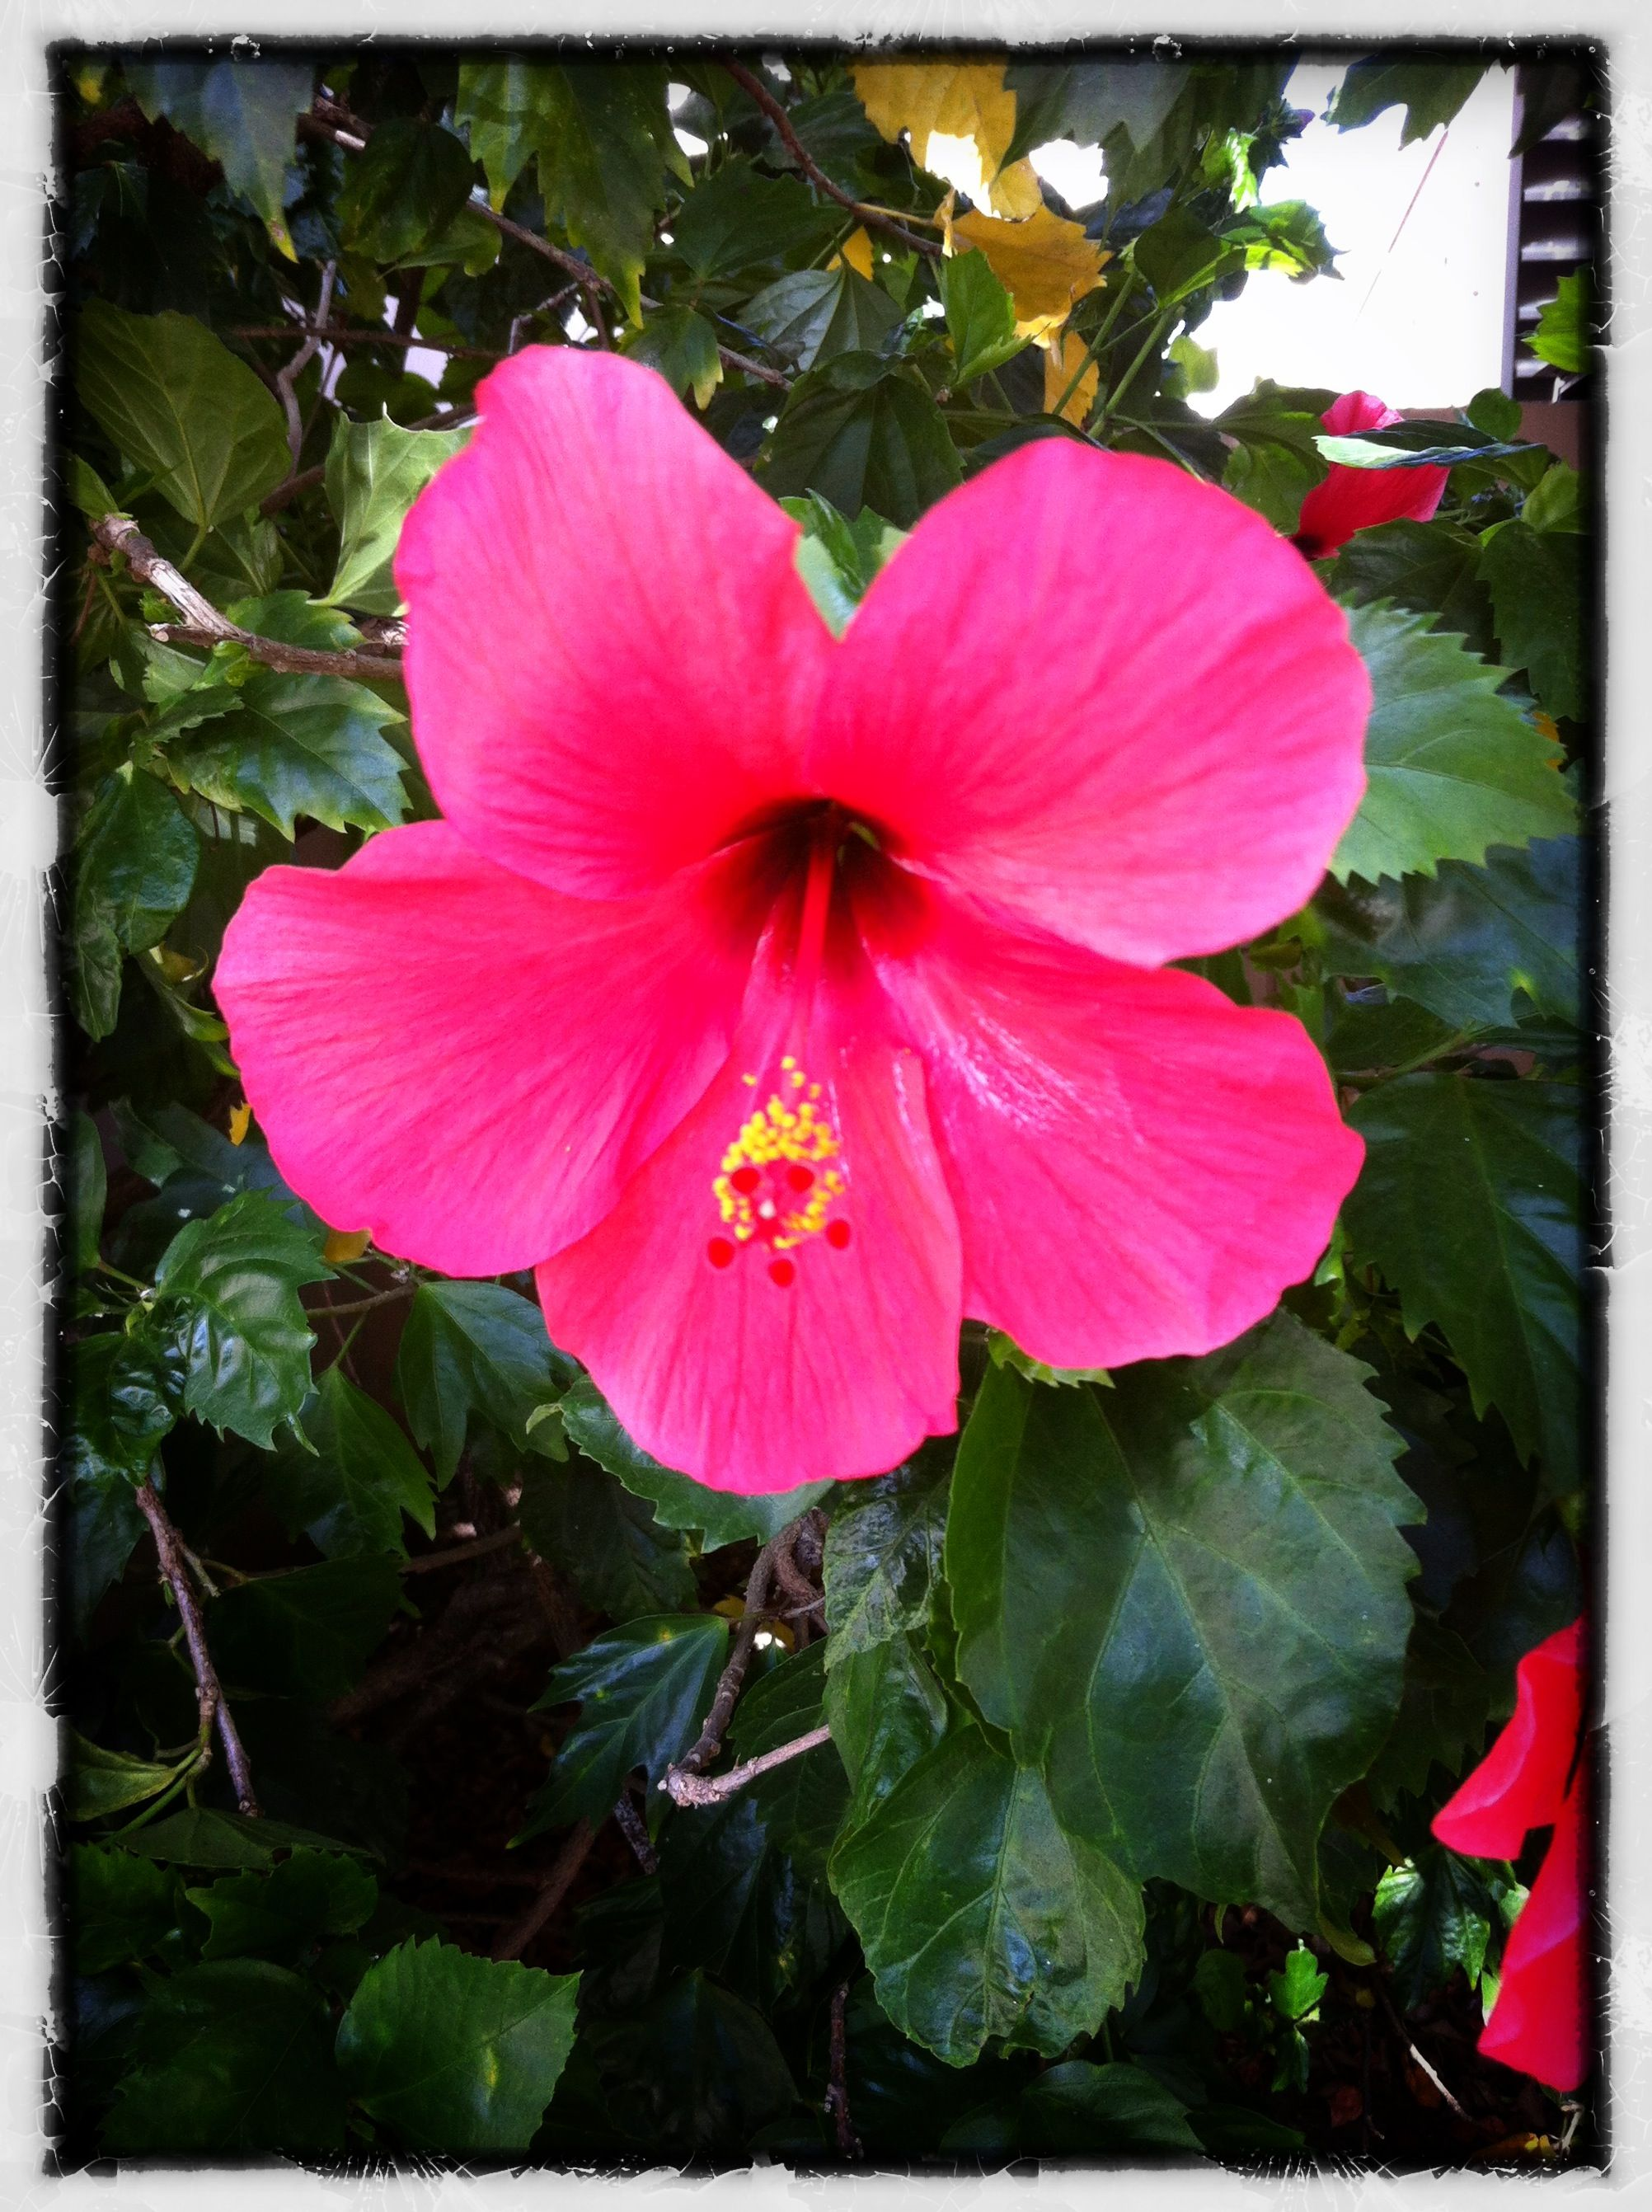 Amapola Name Used In Puerto Rico To Refer To The Hibiscus Flower